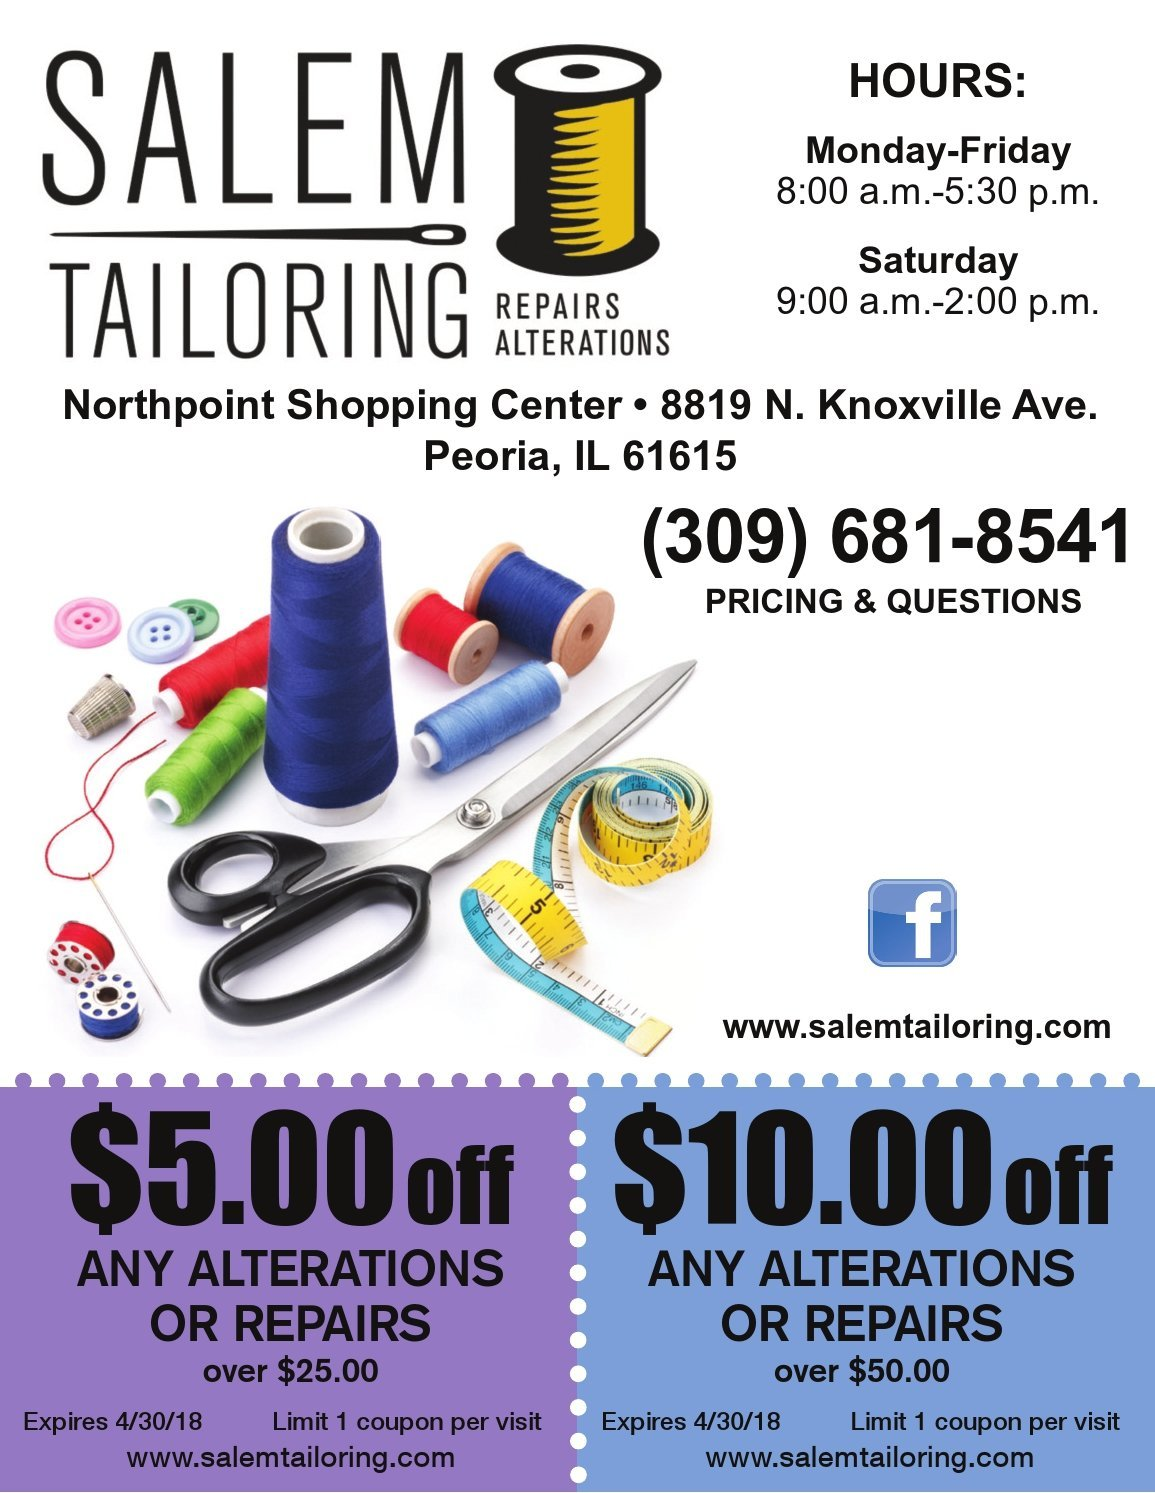 Salem Tailoring repairs and alterations coupons Peoria, IL